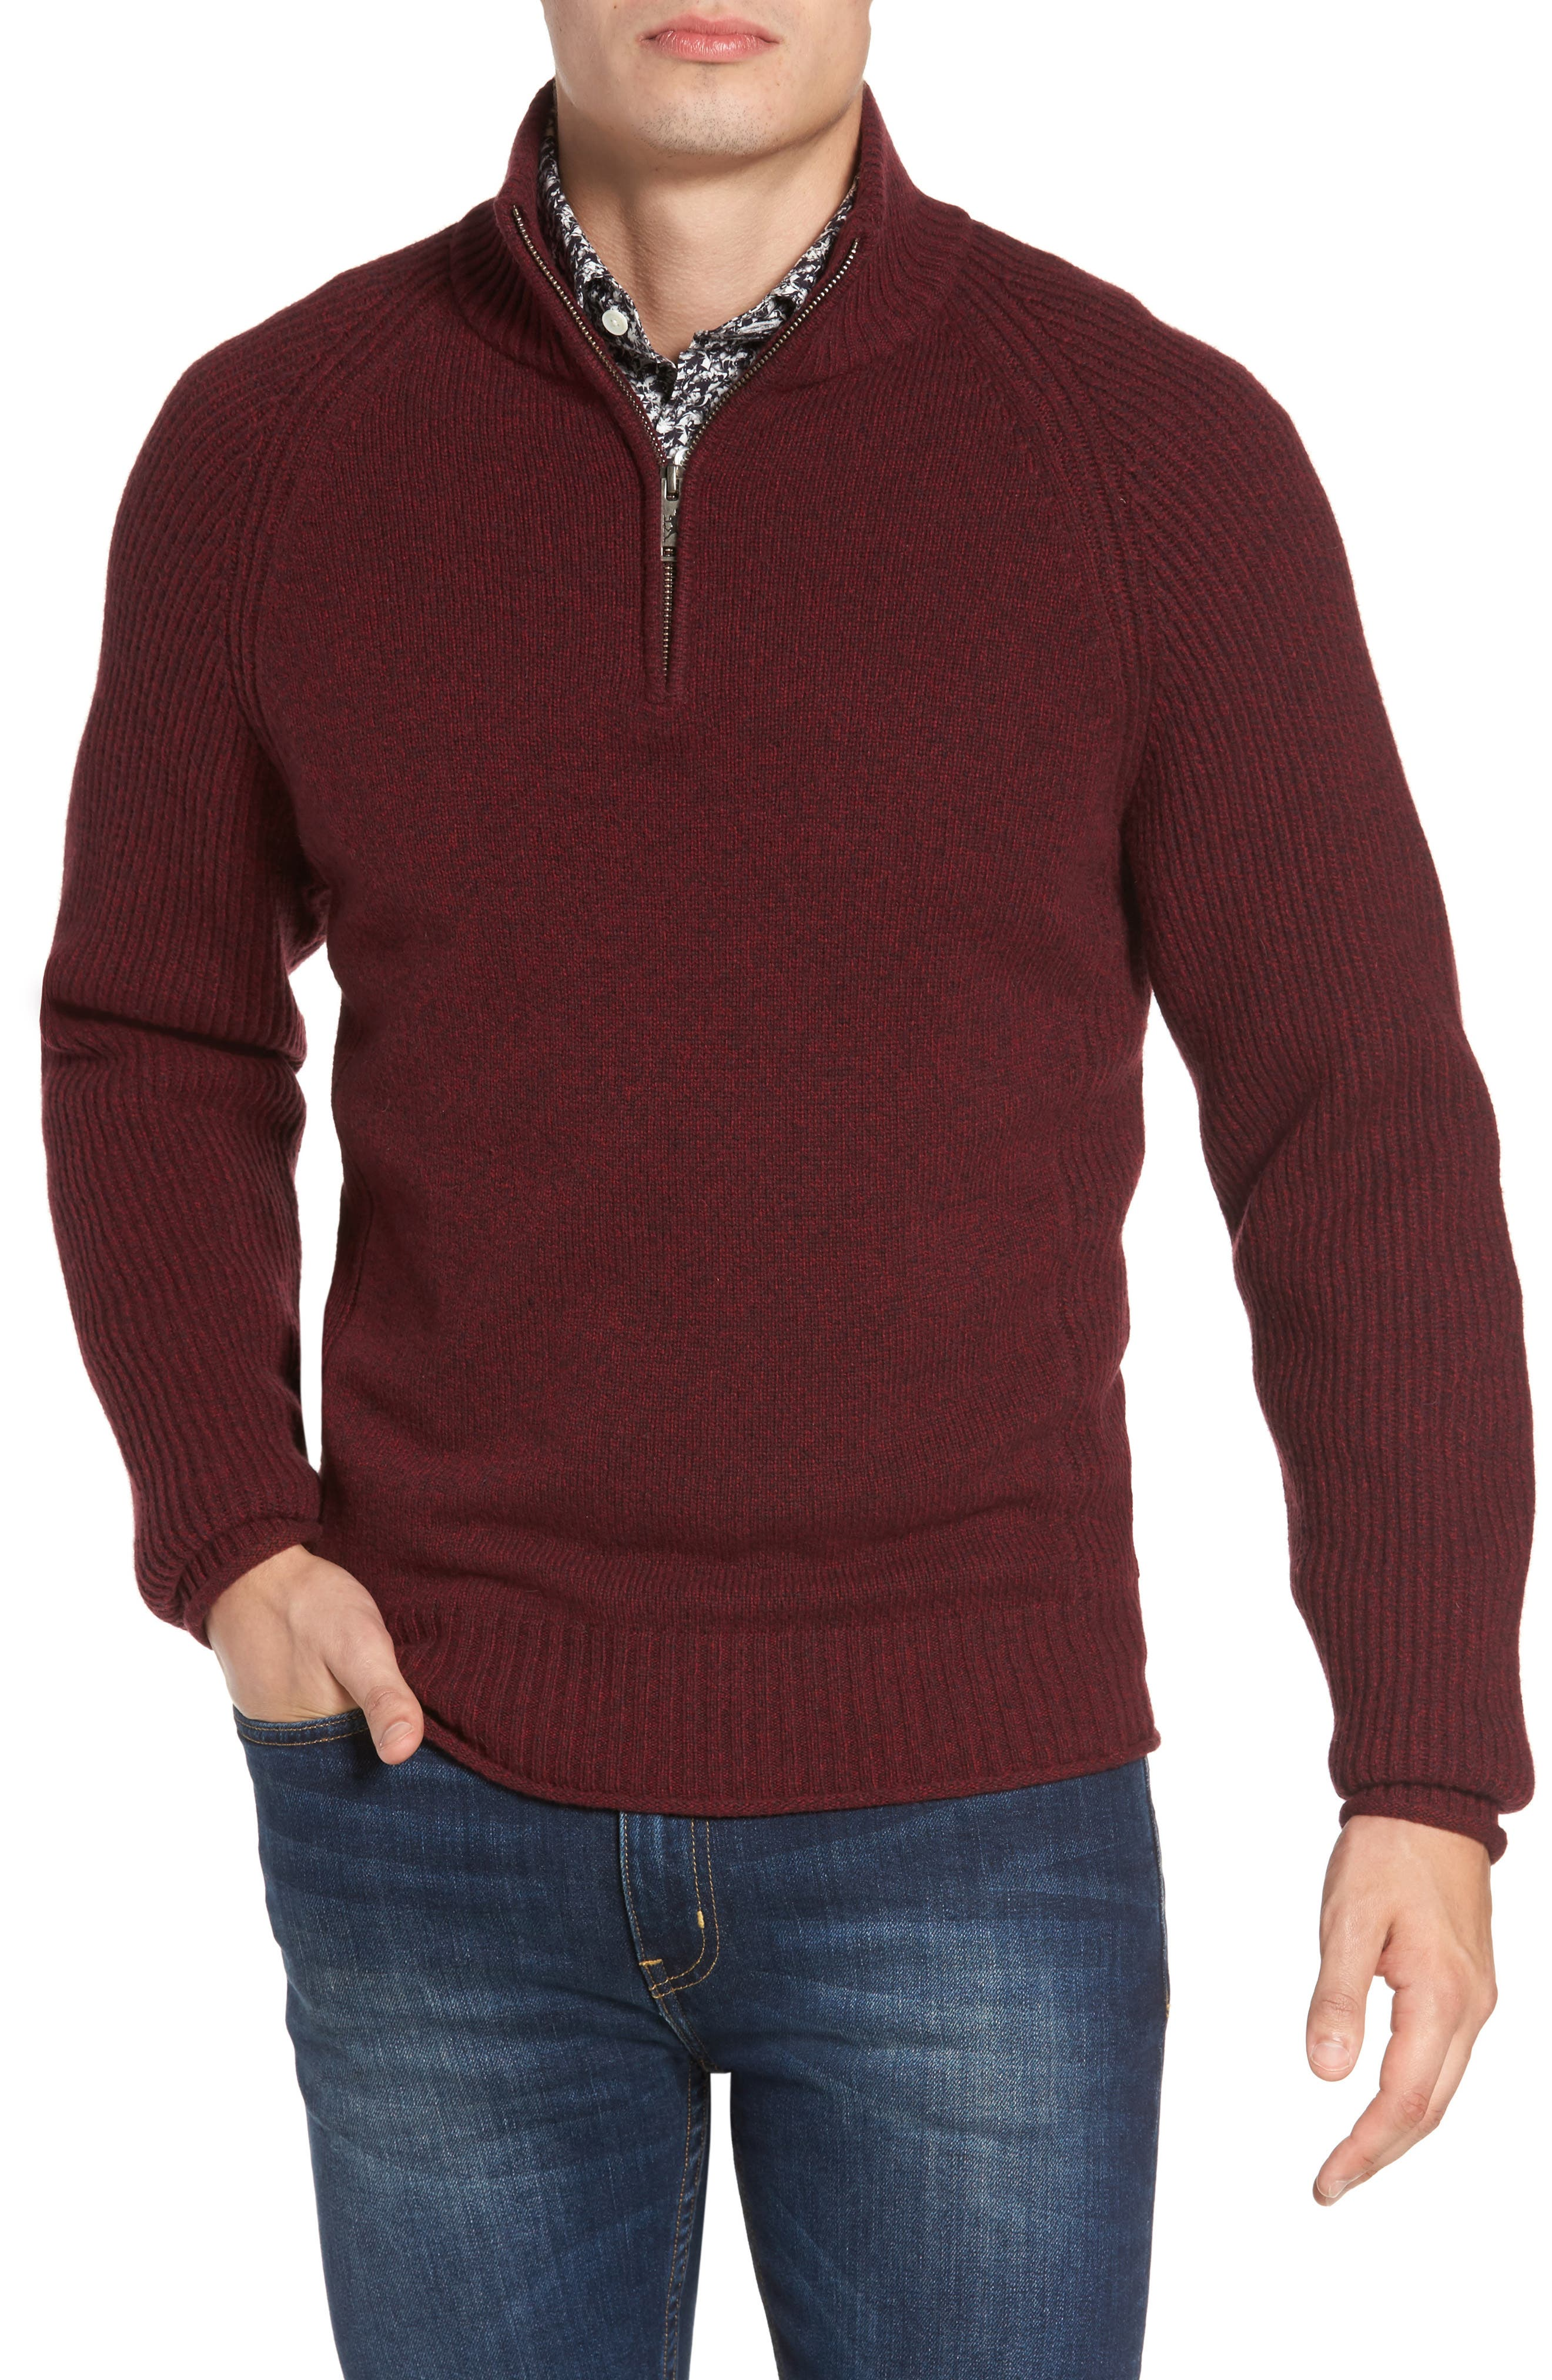 Stredwick Lambswool Sweater,                             Main thumbnail 3, color,